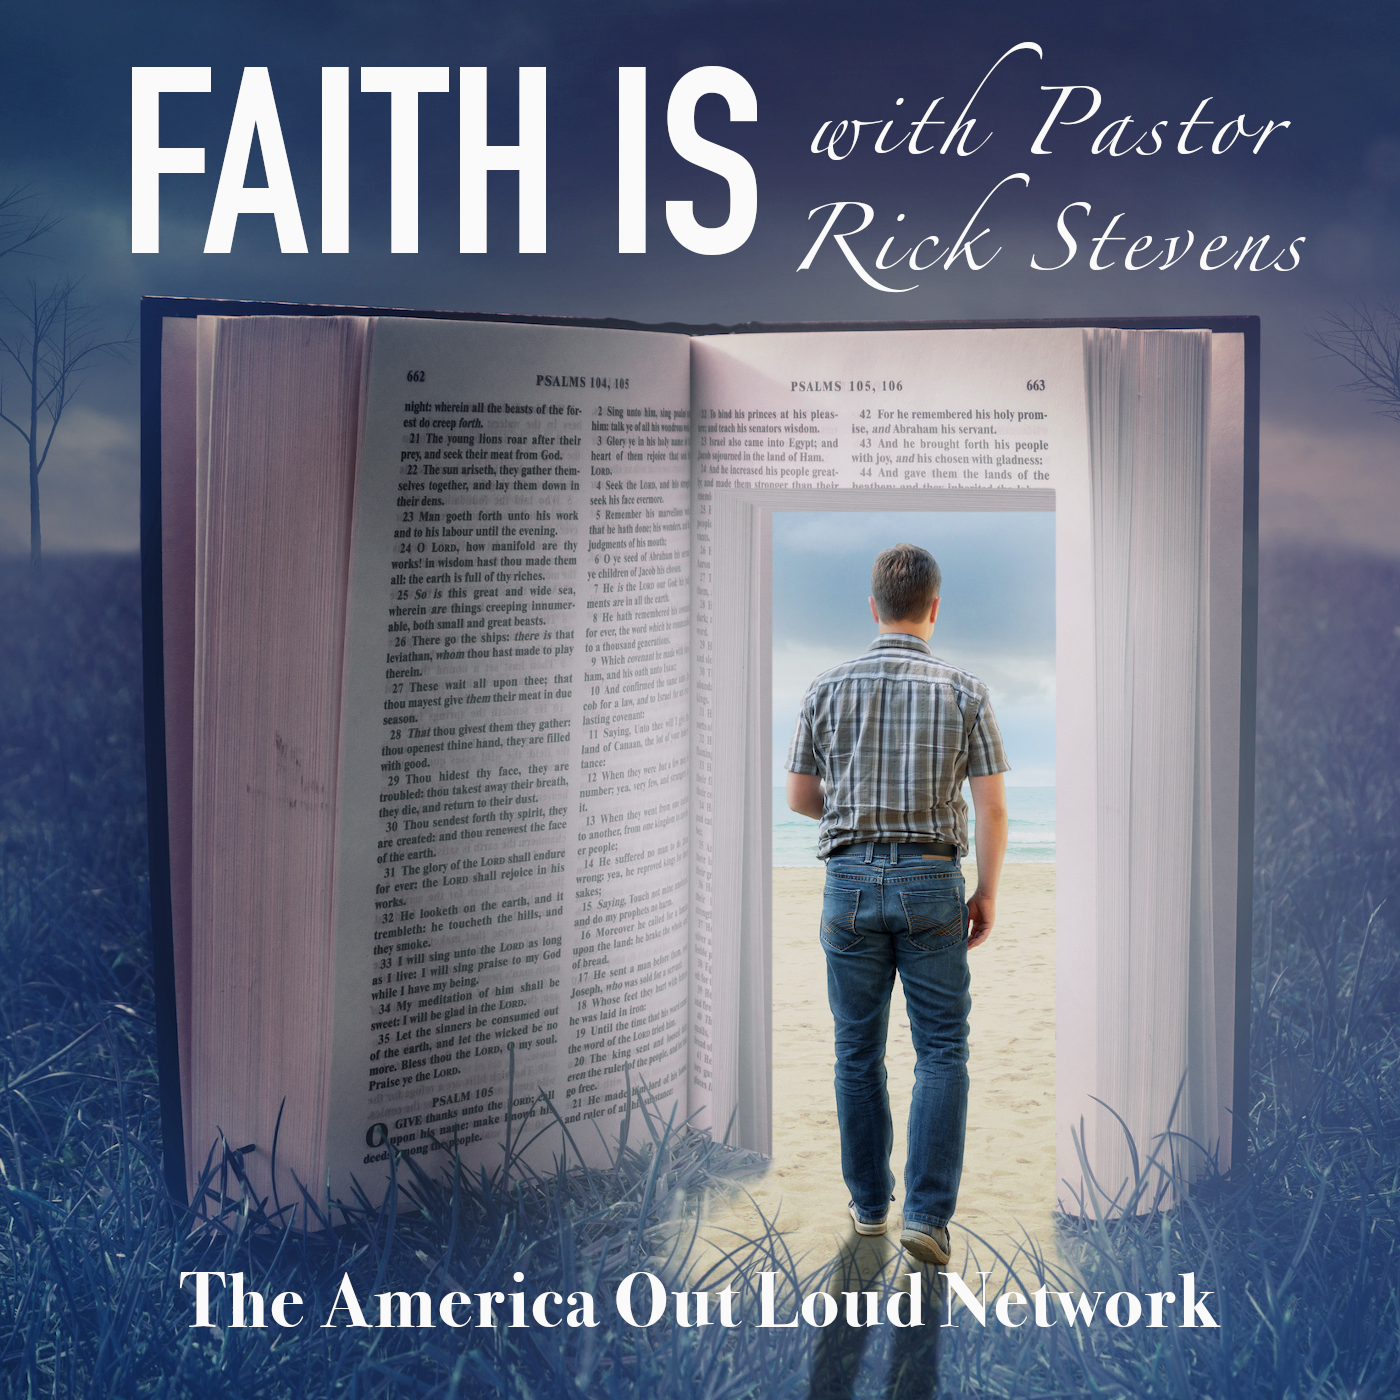 FATH IS... WITH PASTOR RICK STEVENS